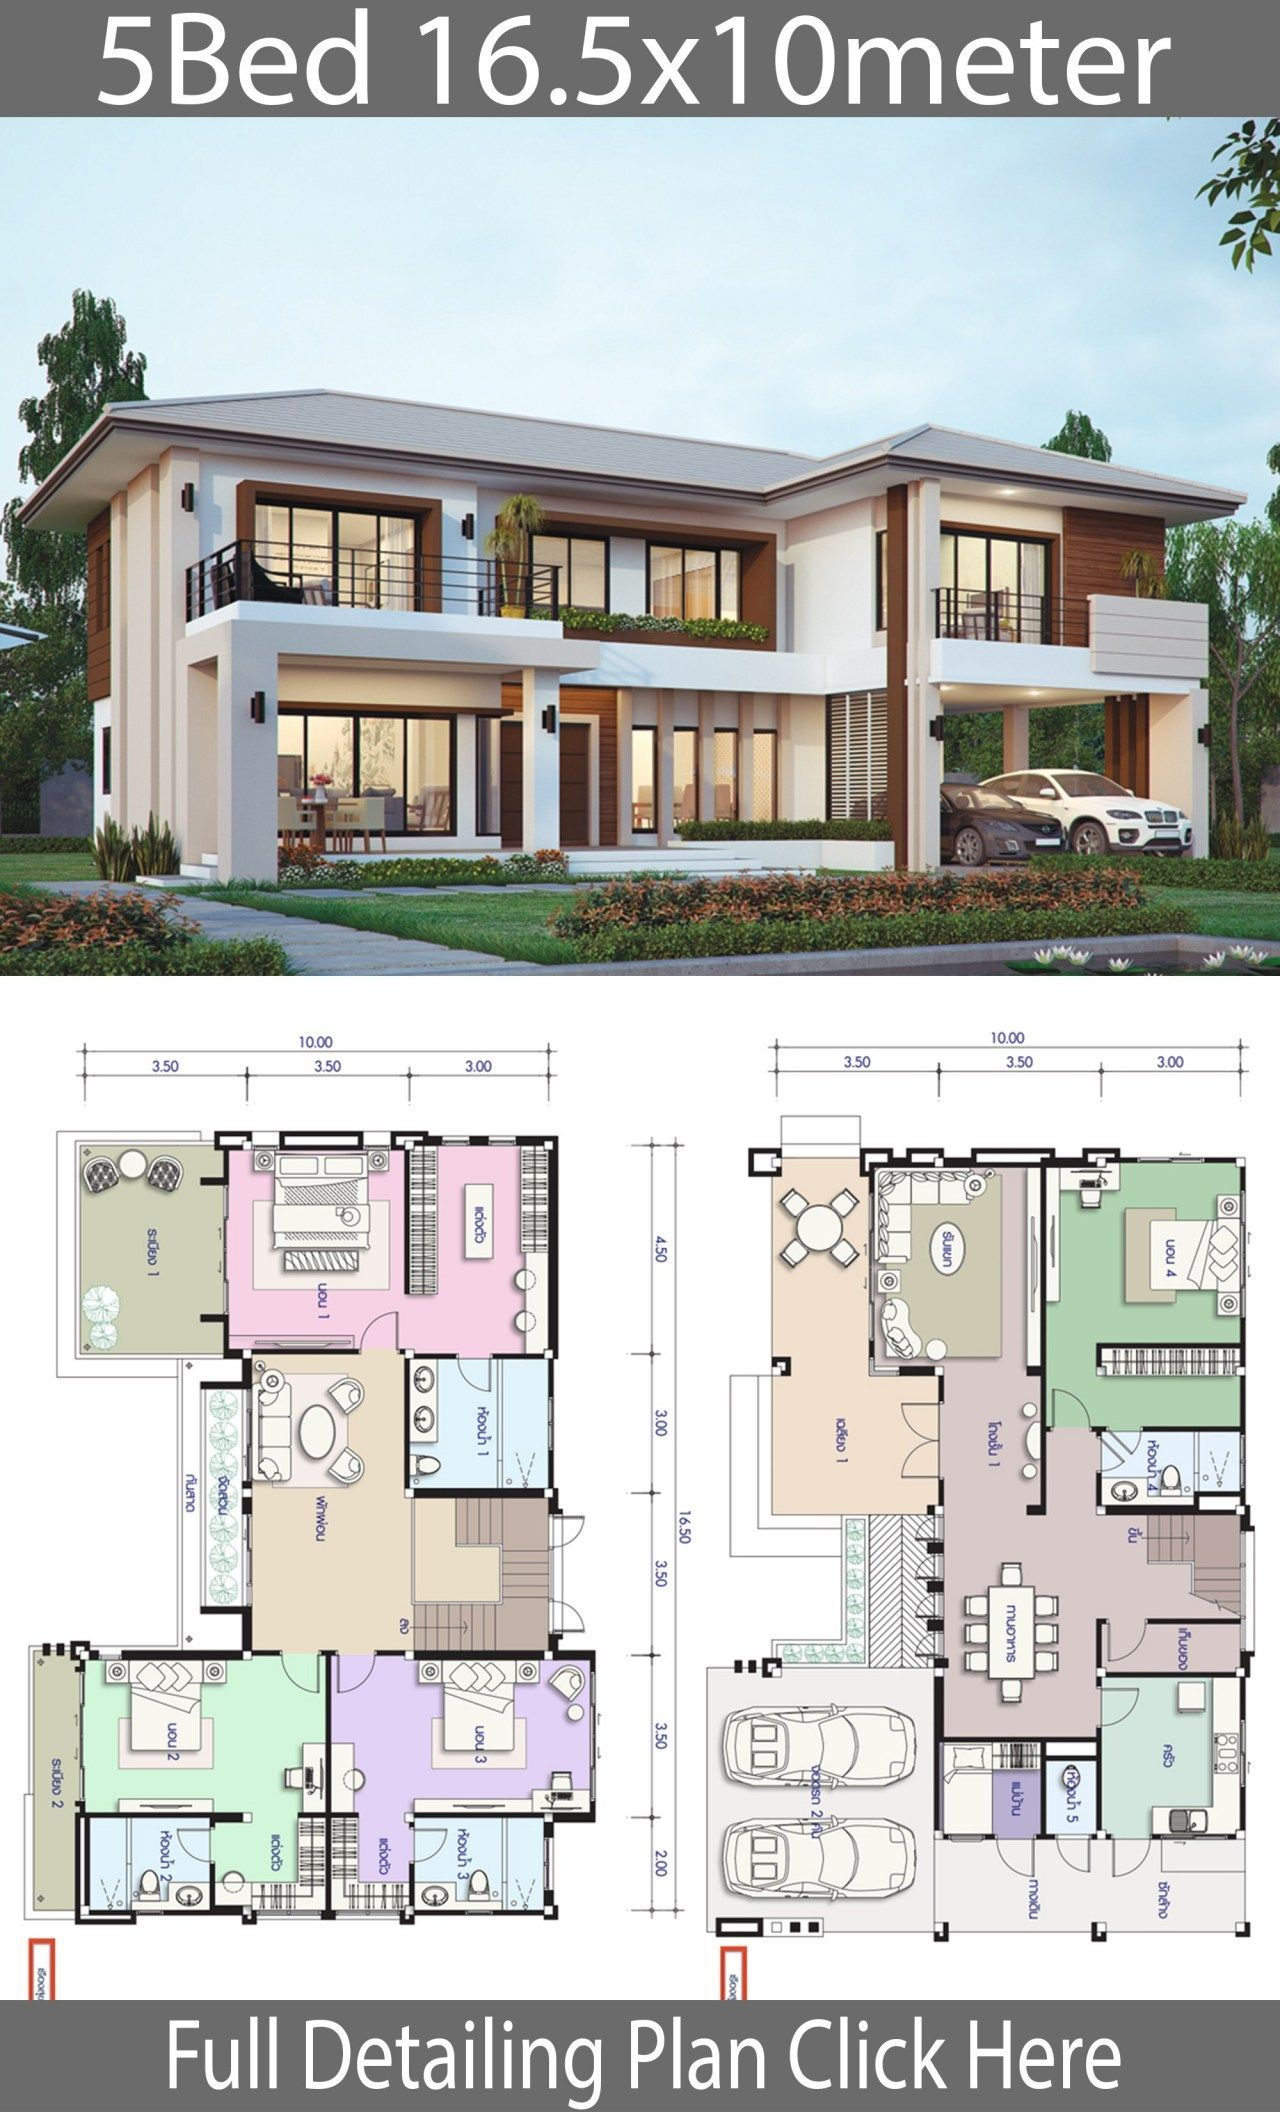 House Design Plan 16 5x10m With 5 Bedrooms Home Ideas House Projects Architecture Architectural House Plans House Layouts